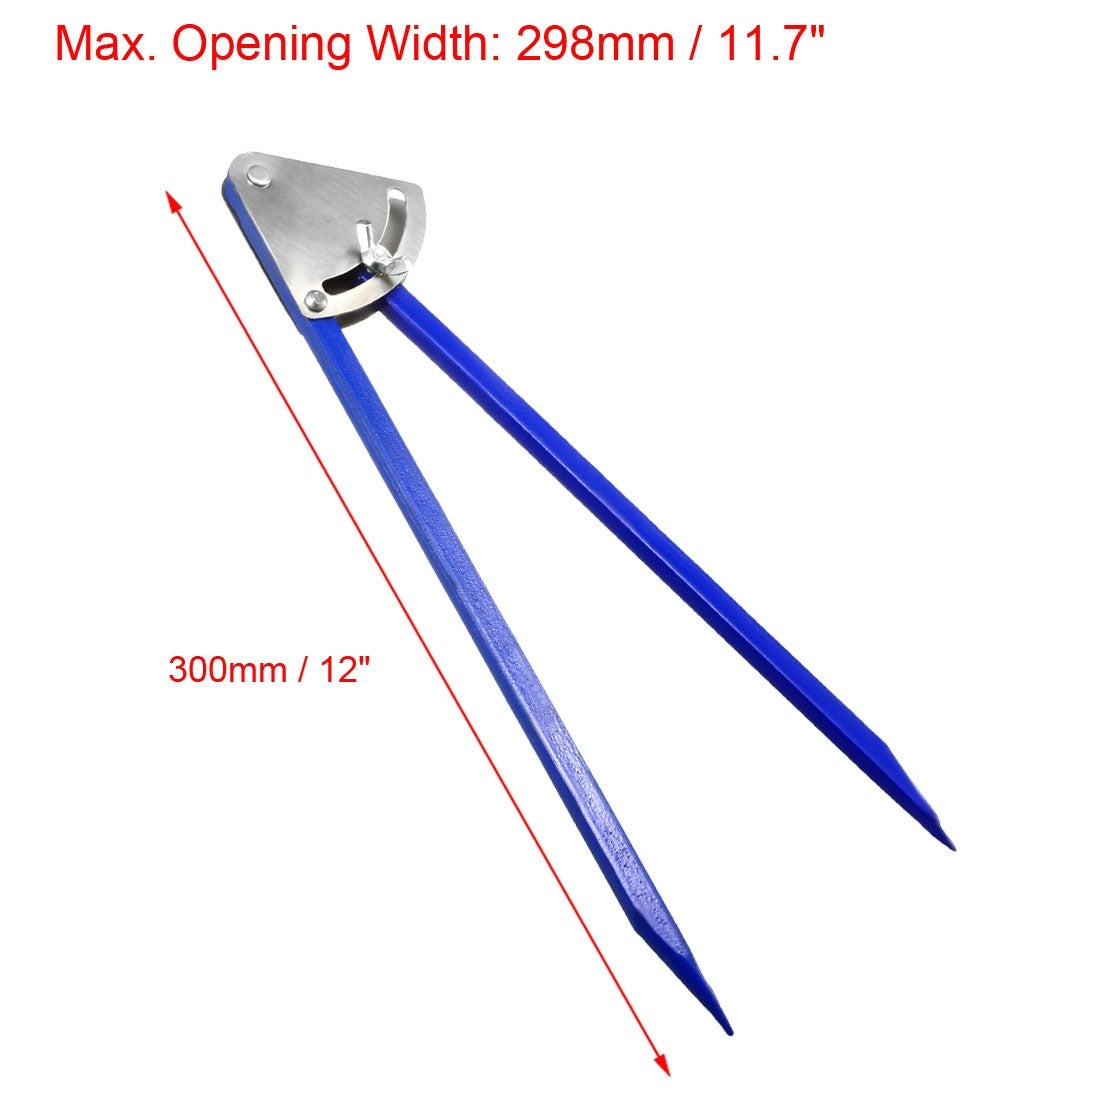 uxcell Metalworking 14 inch Marking Alloy Divider Caliper Tool Blue